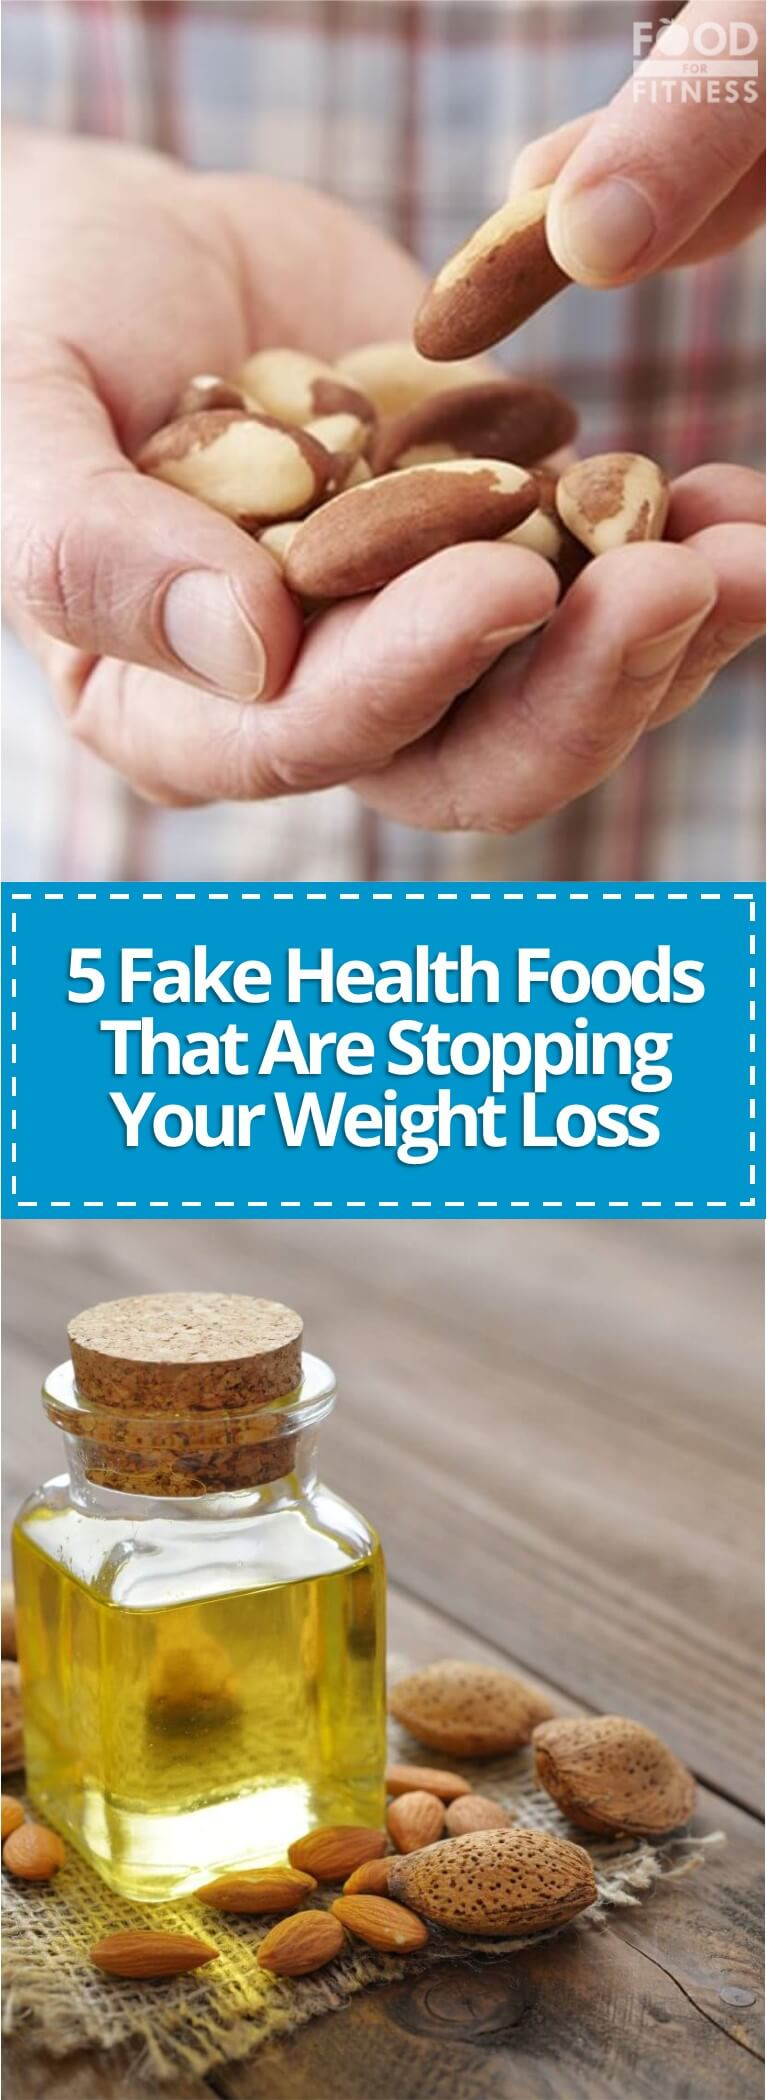 5 Fake Health Foods That Are Stopping Your Weight Loss